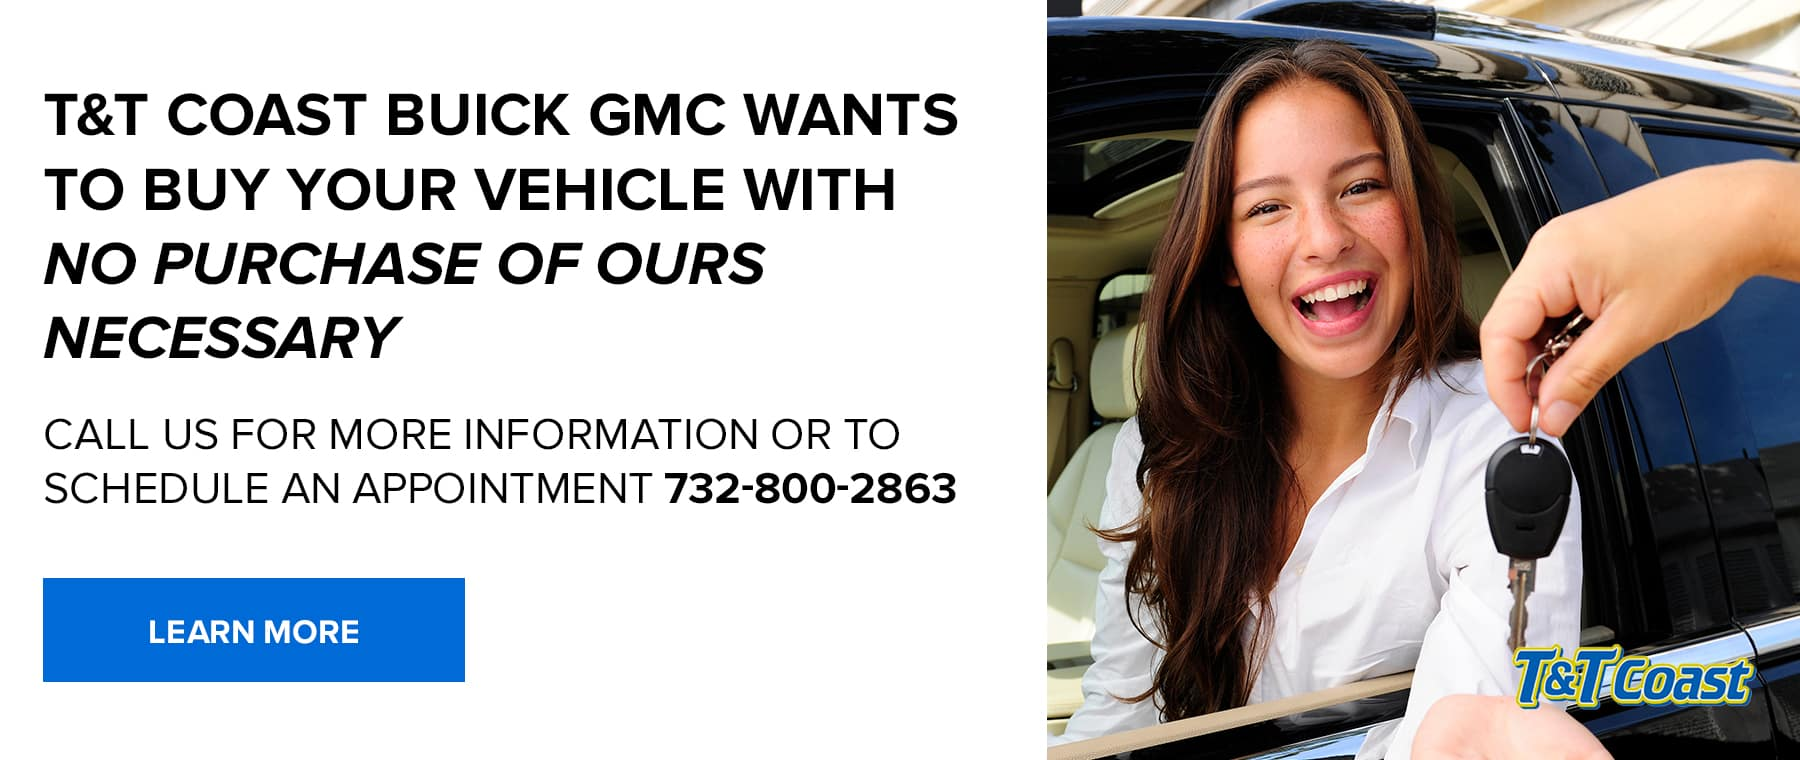 T&T COAST BUICK GMC WANTS TO BUY YOUR VEHICLE